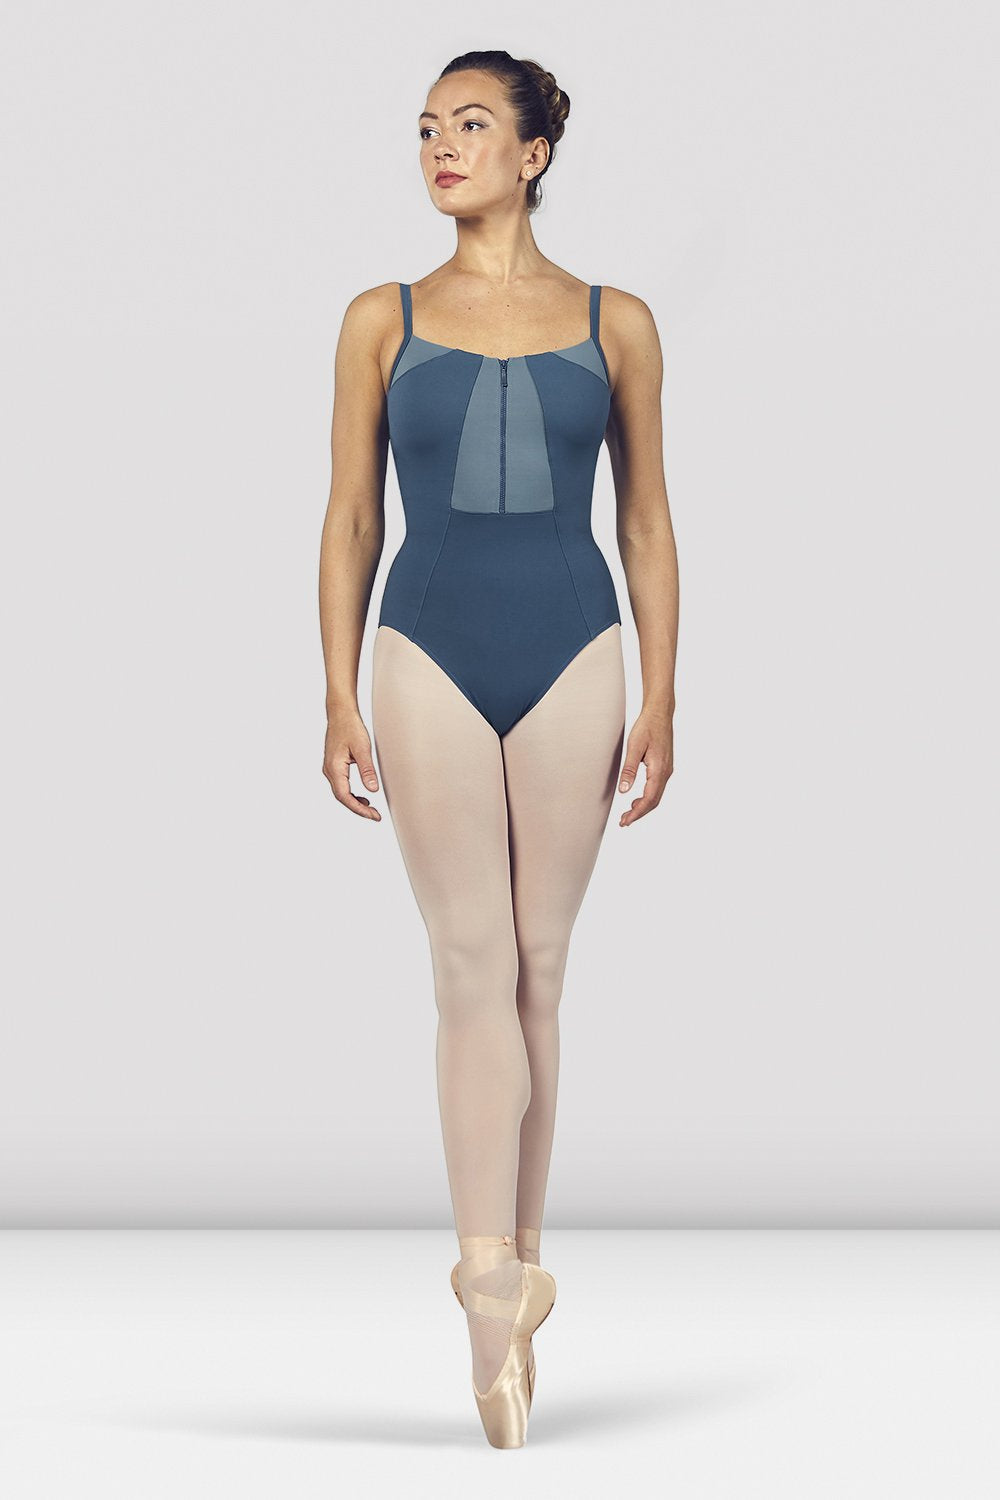 Seaport Bloch Ladies Vilette Zip Front Open Back Camisole Leotard on female model en pointe in fifth position